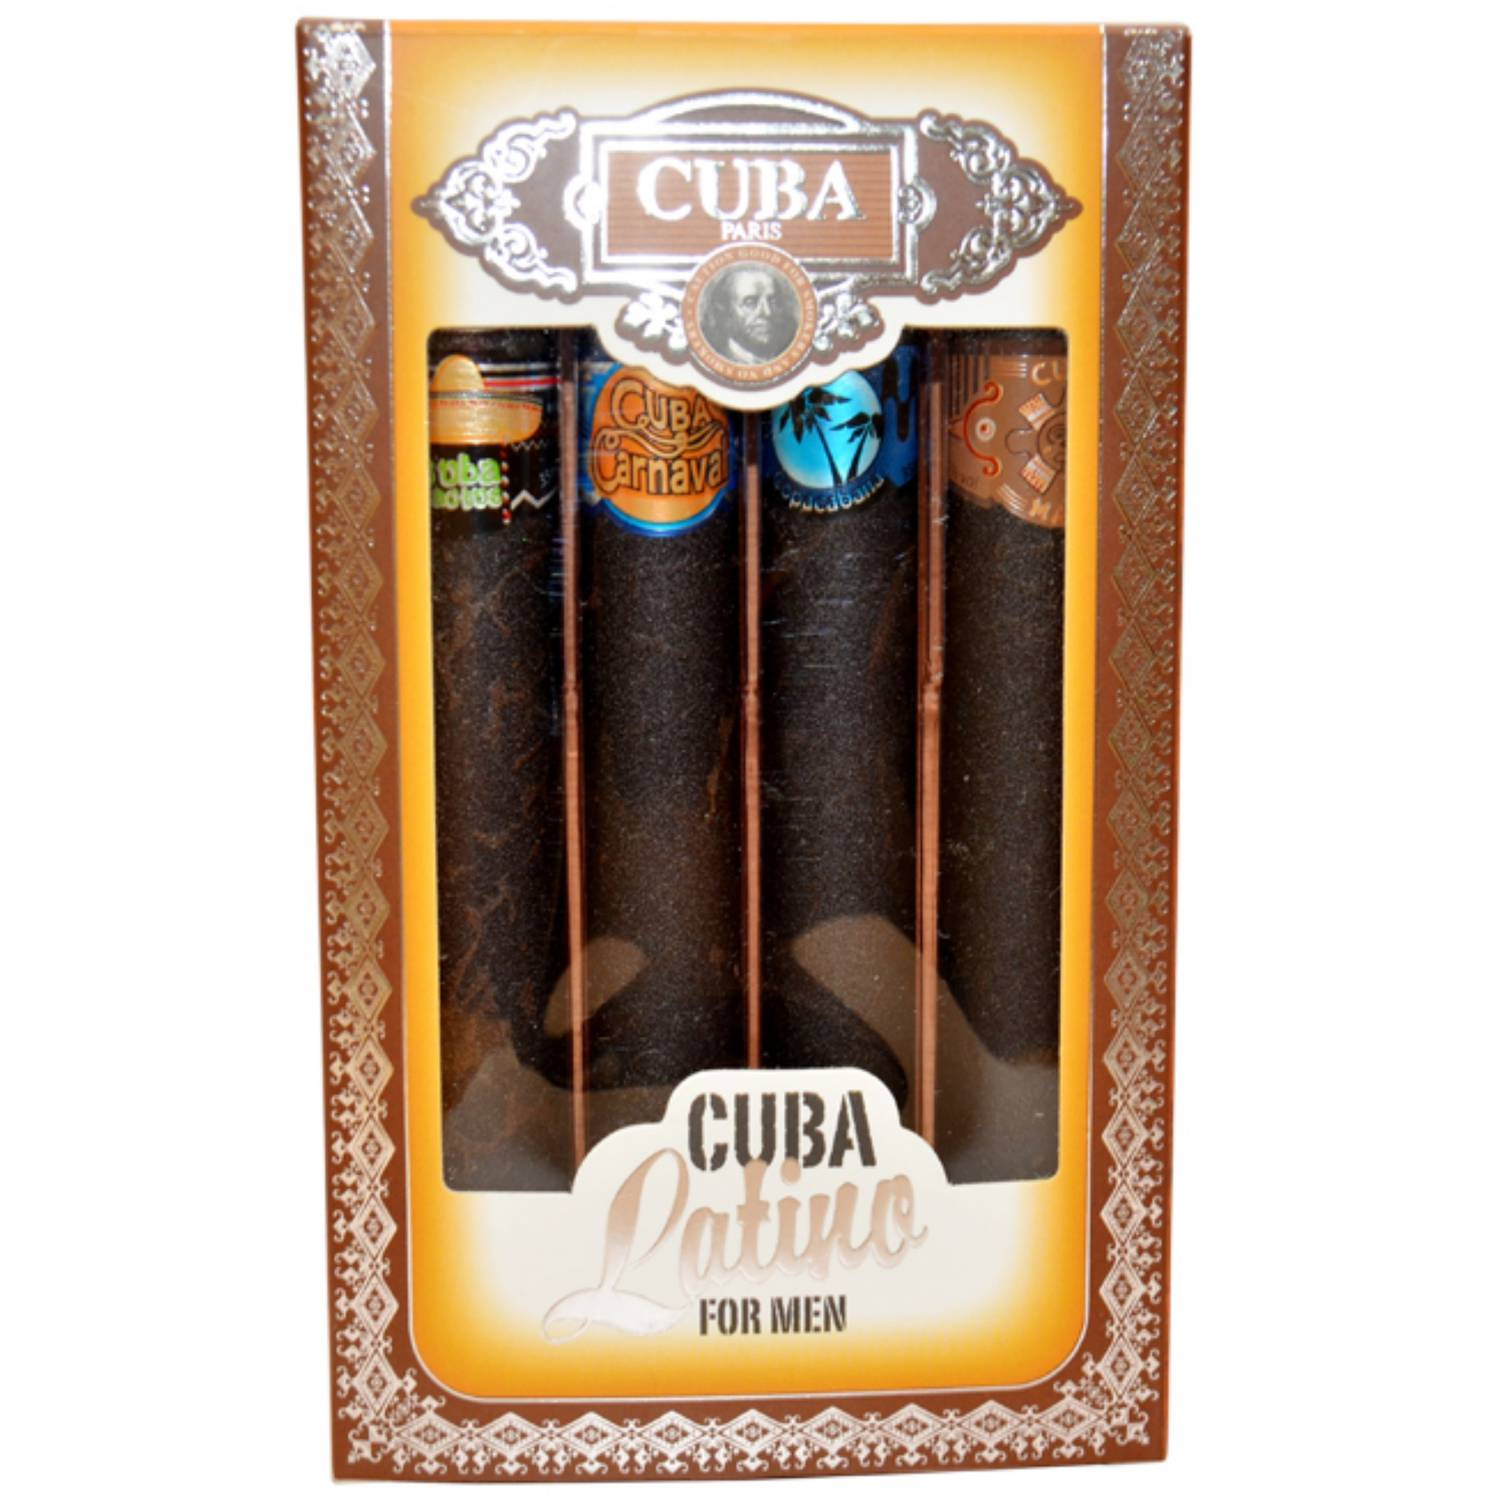 Cuba Latino Collection for Men Mini Fragrance Gift Set, 4 pc